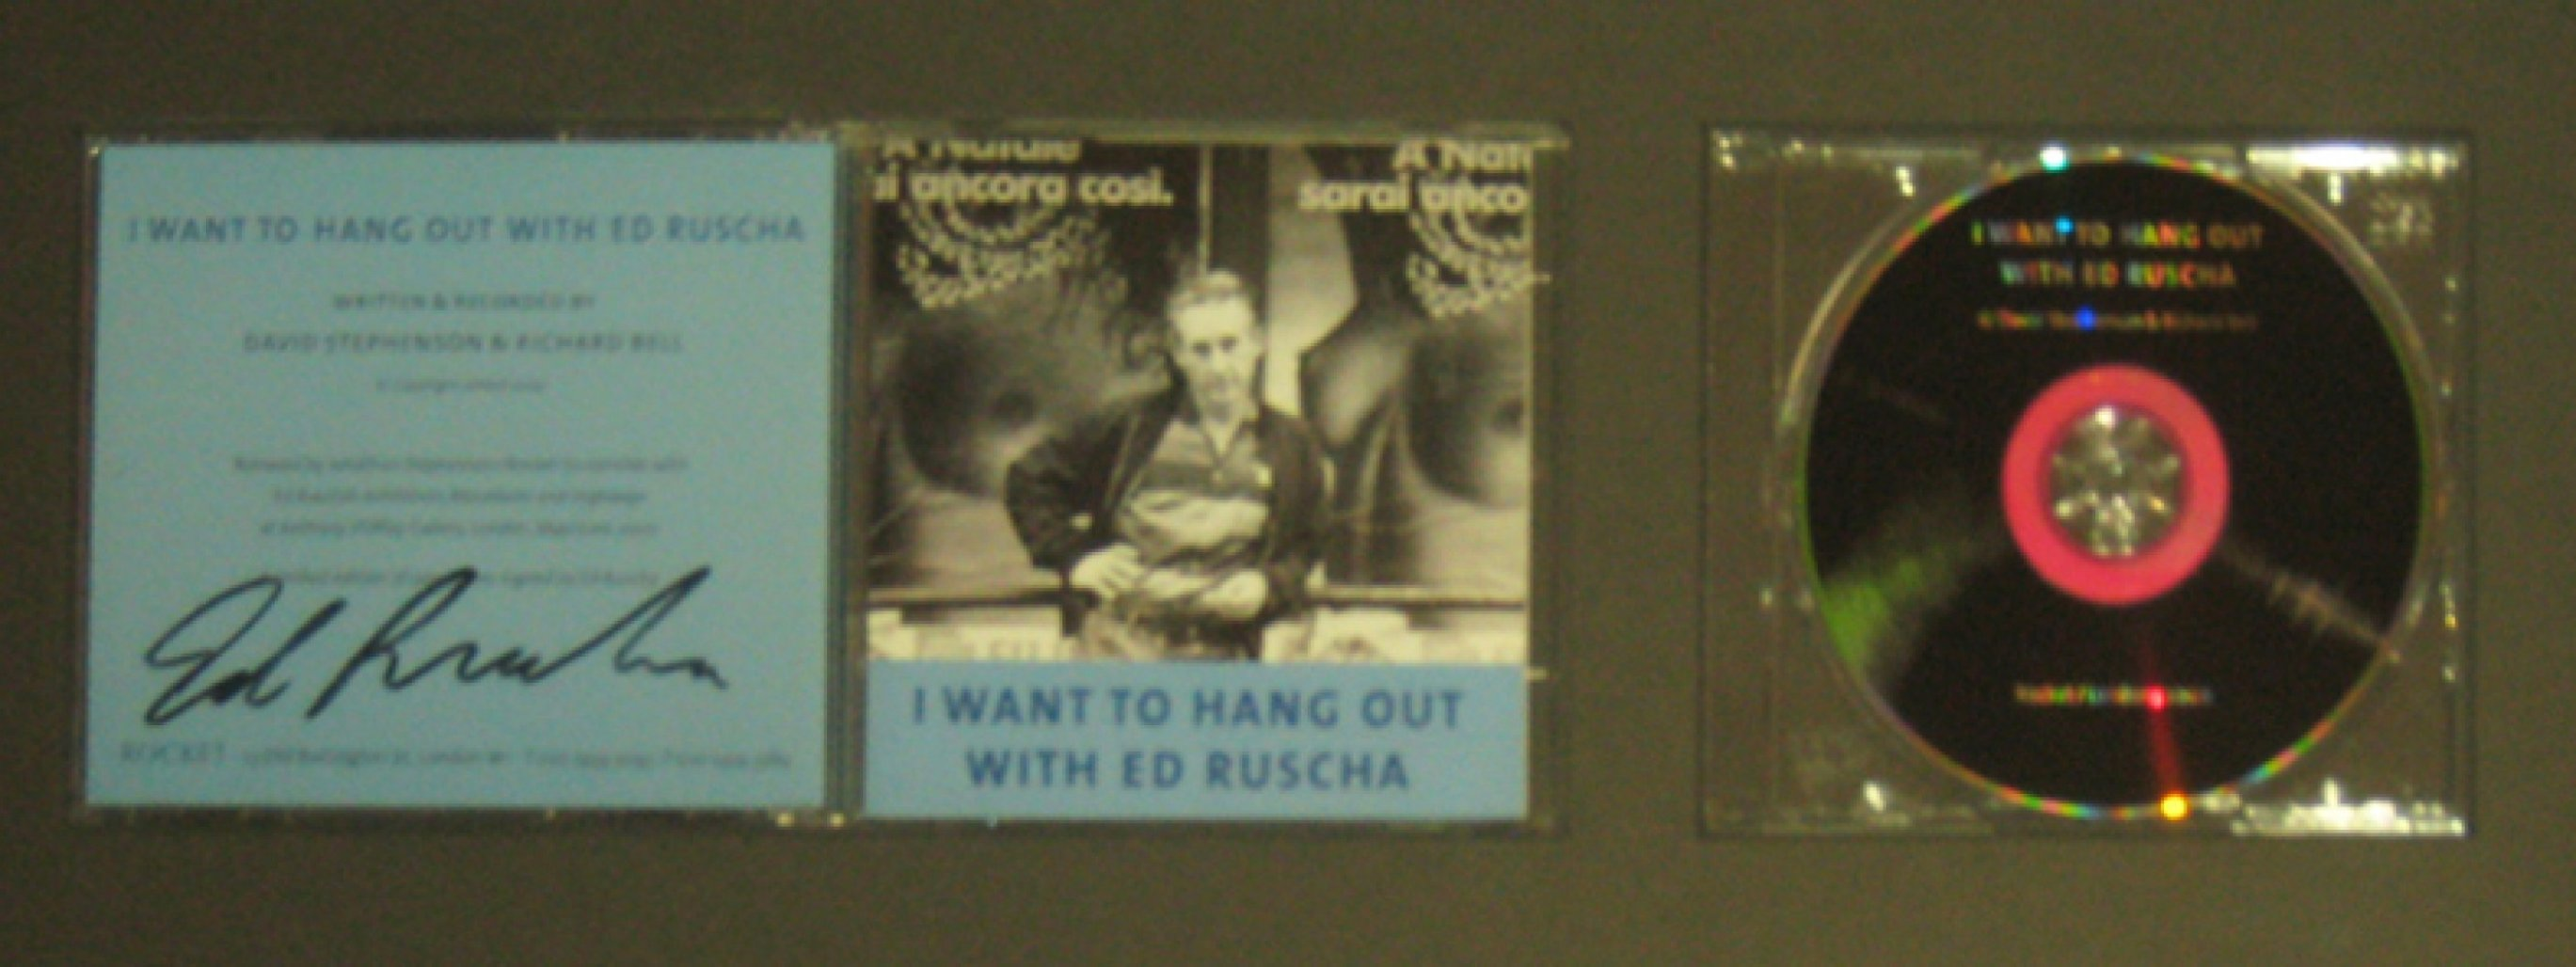 I Want To Hang Out With Ed Ruscha- Photo Booklet with CD  (In CD Case),. Other by Edward Ruscha